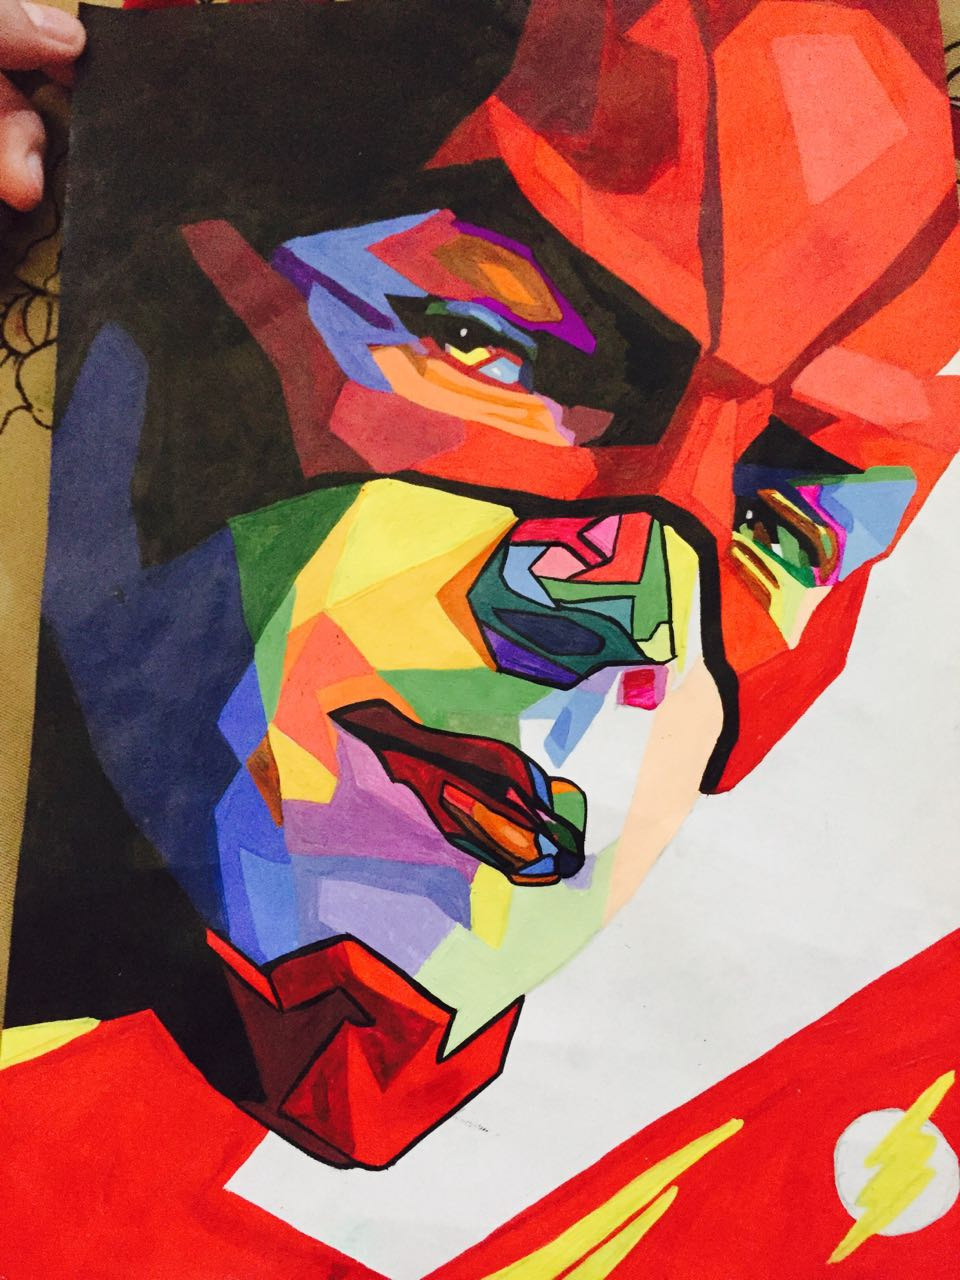 Abhinit Poddar's Pop Art Of Barry Allen